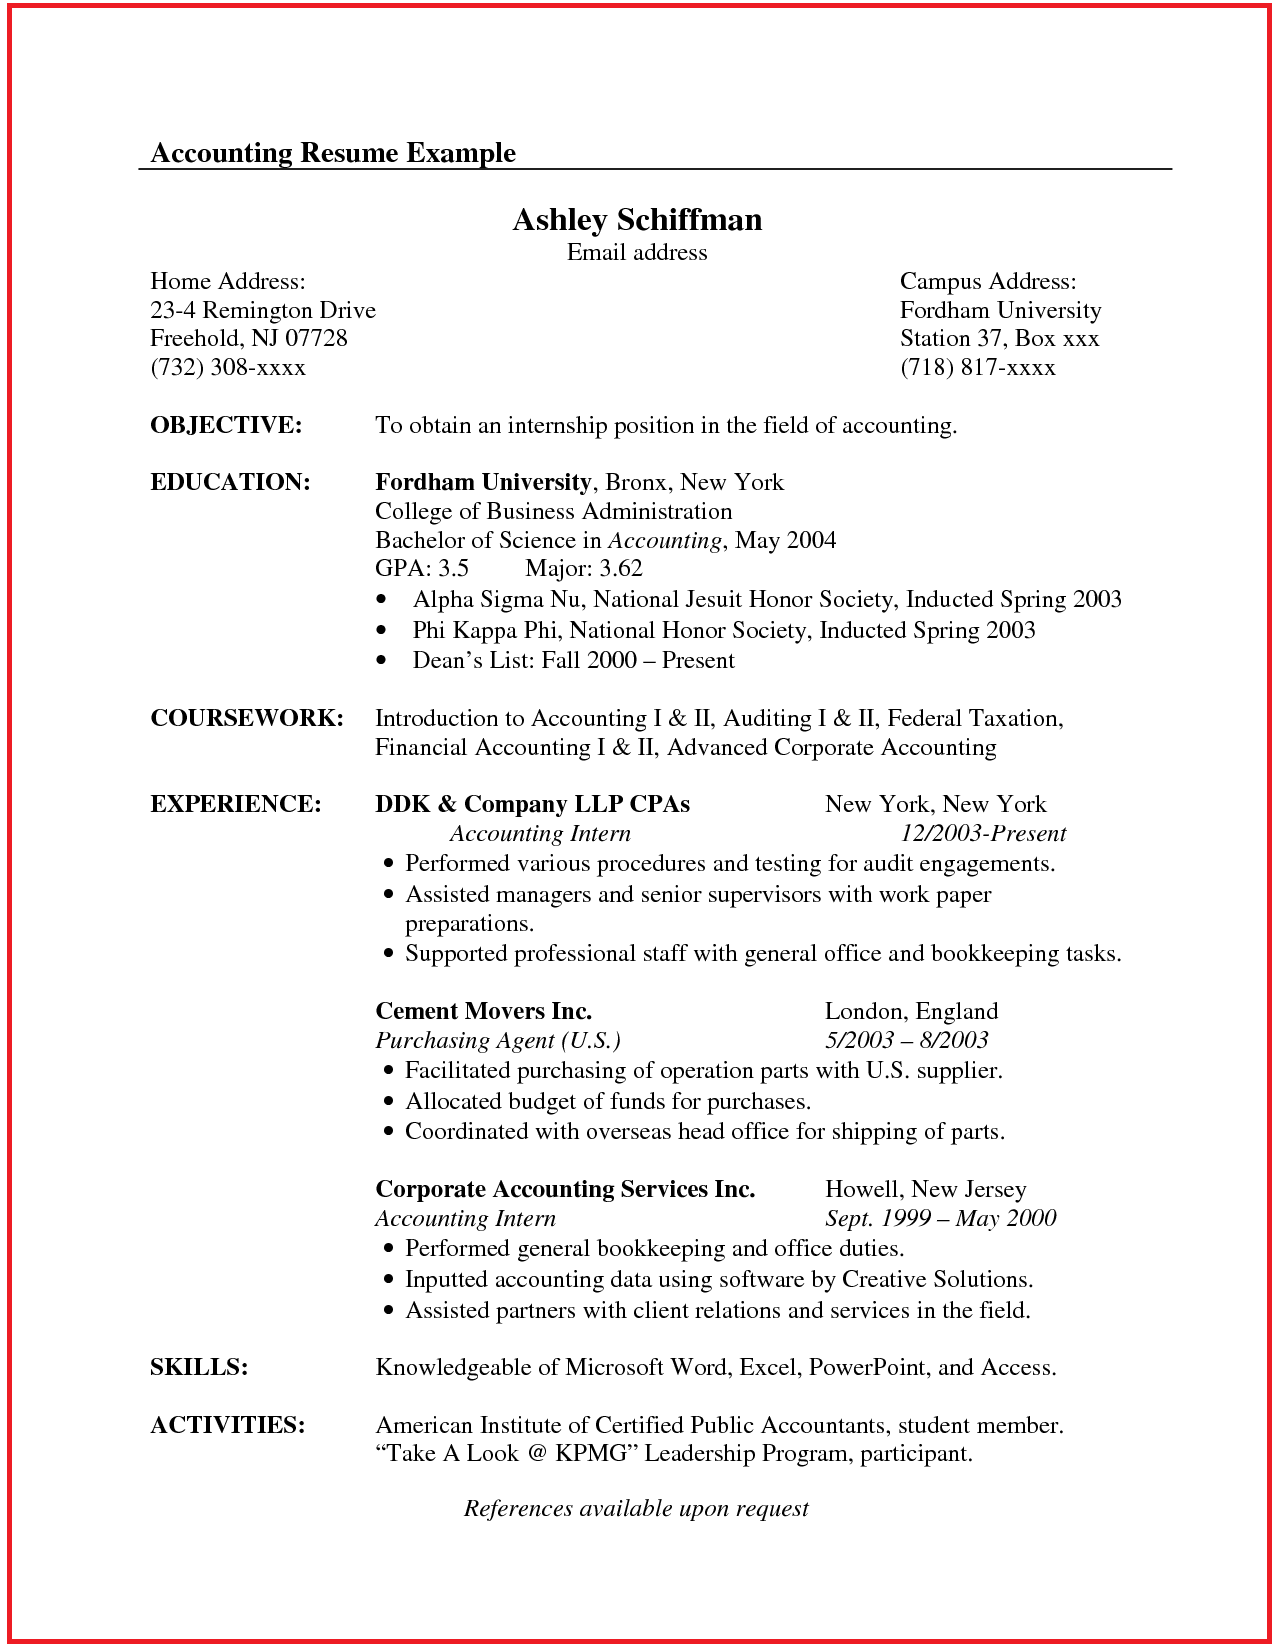 Pin By Josi Perez On Business Pinterest Sample Resume Resume